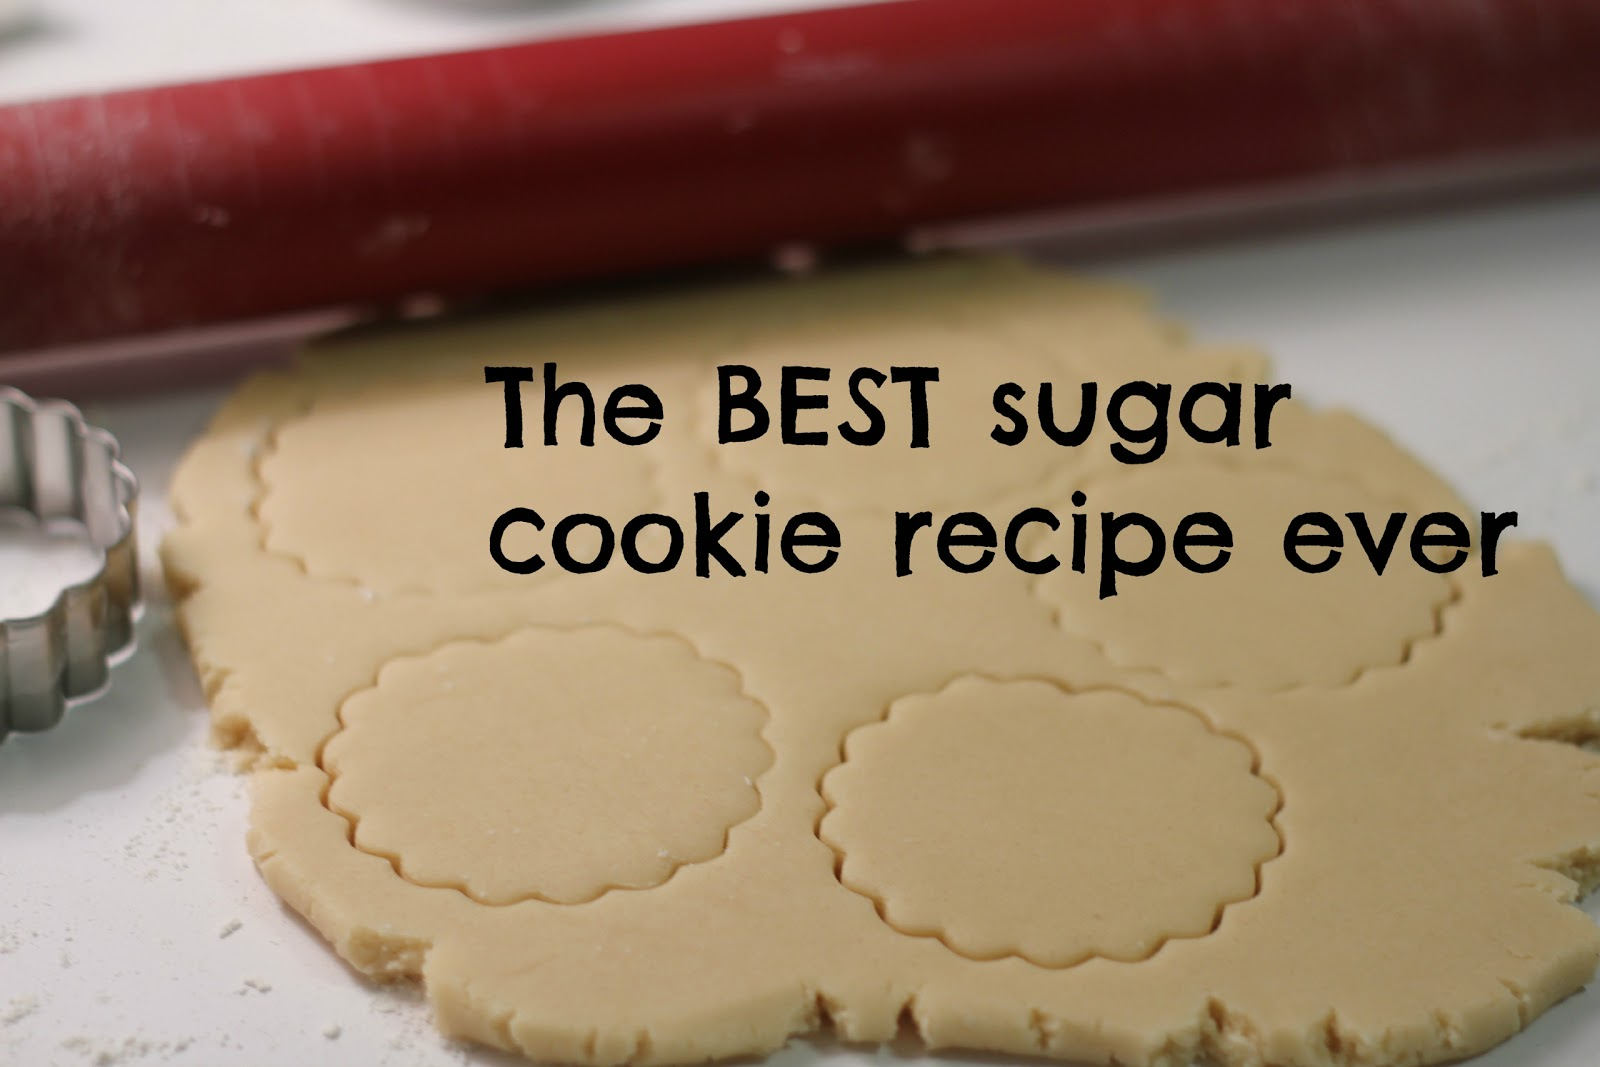 Crafty Cookies: The BEST Sugar Cookie Recipe Ever